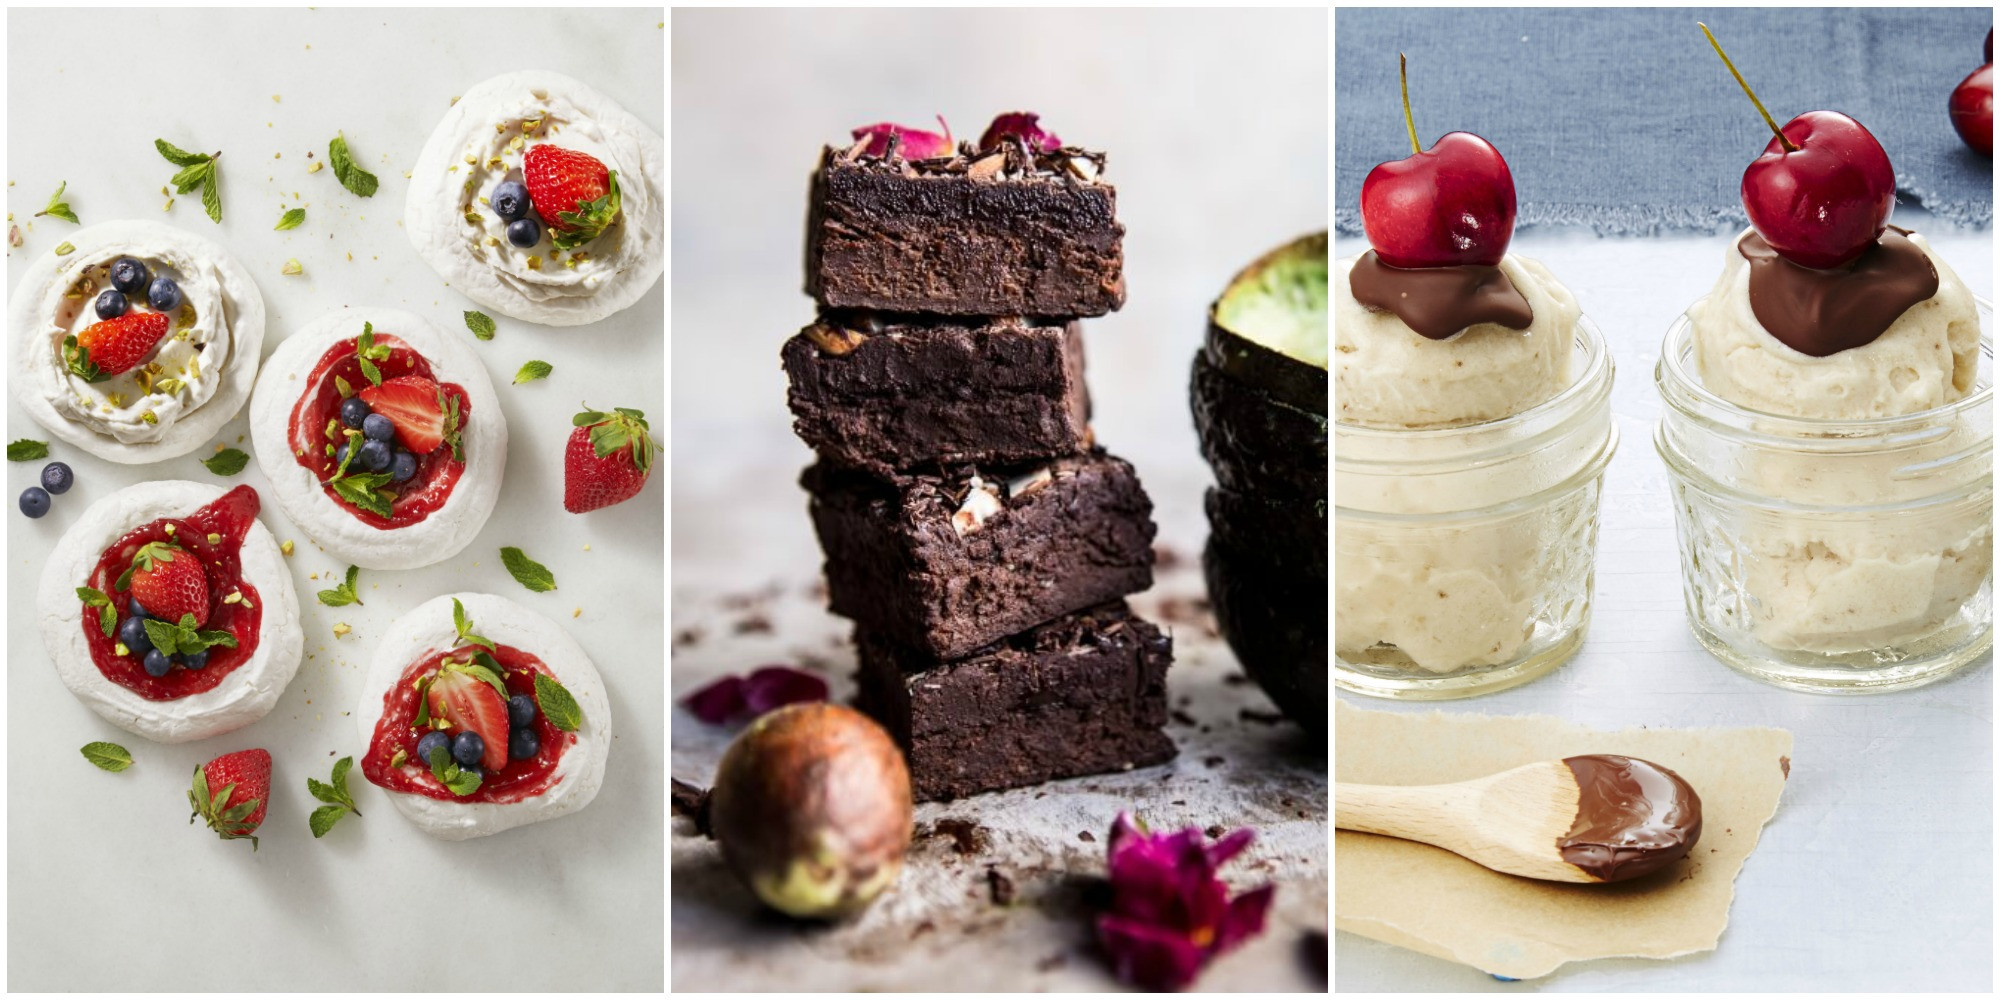 Healthy Easy Desserts  15 Best Healthy Dessert Recipes Easy Ideas for Low